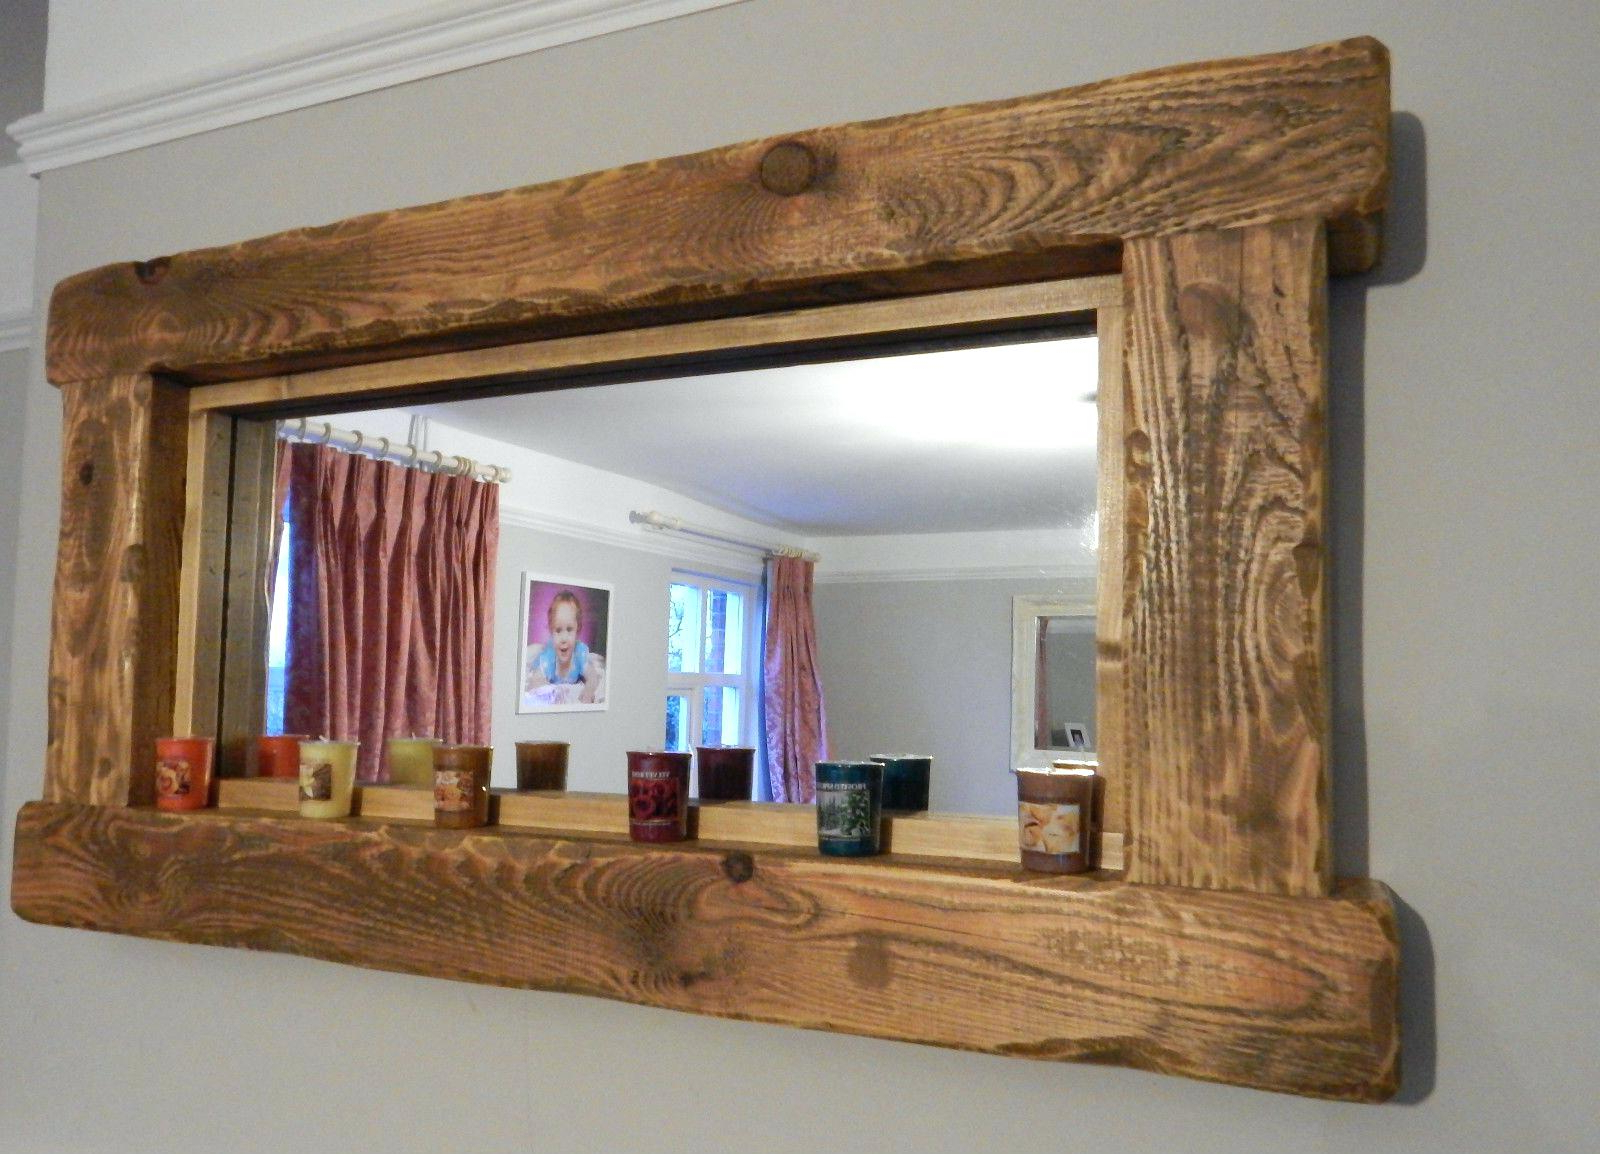 Reclaimed Wood Wall Mirror Frames Round Decoration Wildlife Throughout Most Up To Date Rustic Wood Wall Mirrors (View 16 of 20)